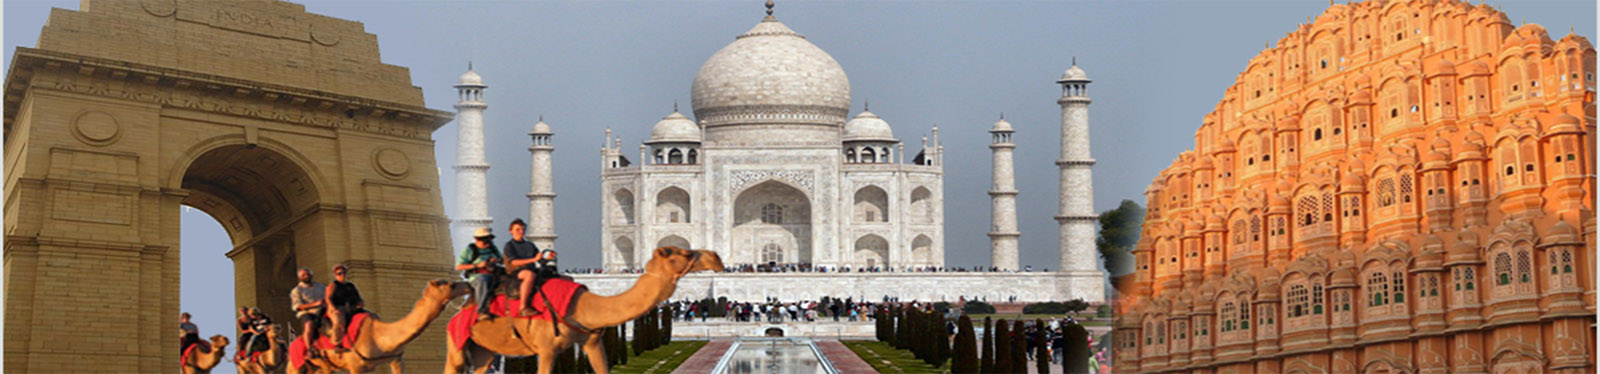 Car Rental Delhi Agra Jaipur TourTour and TravelsVacation RentalsAll Indiaother